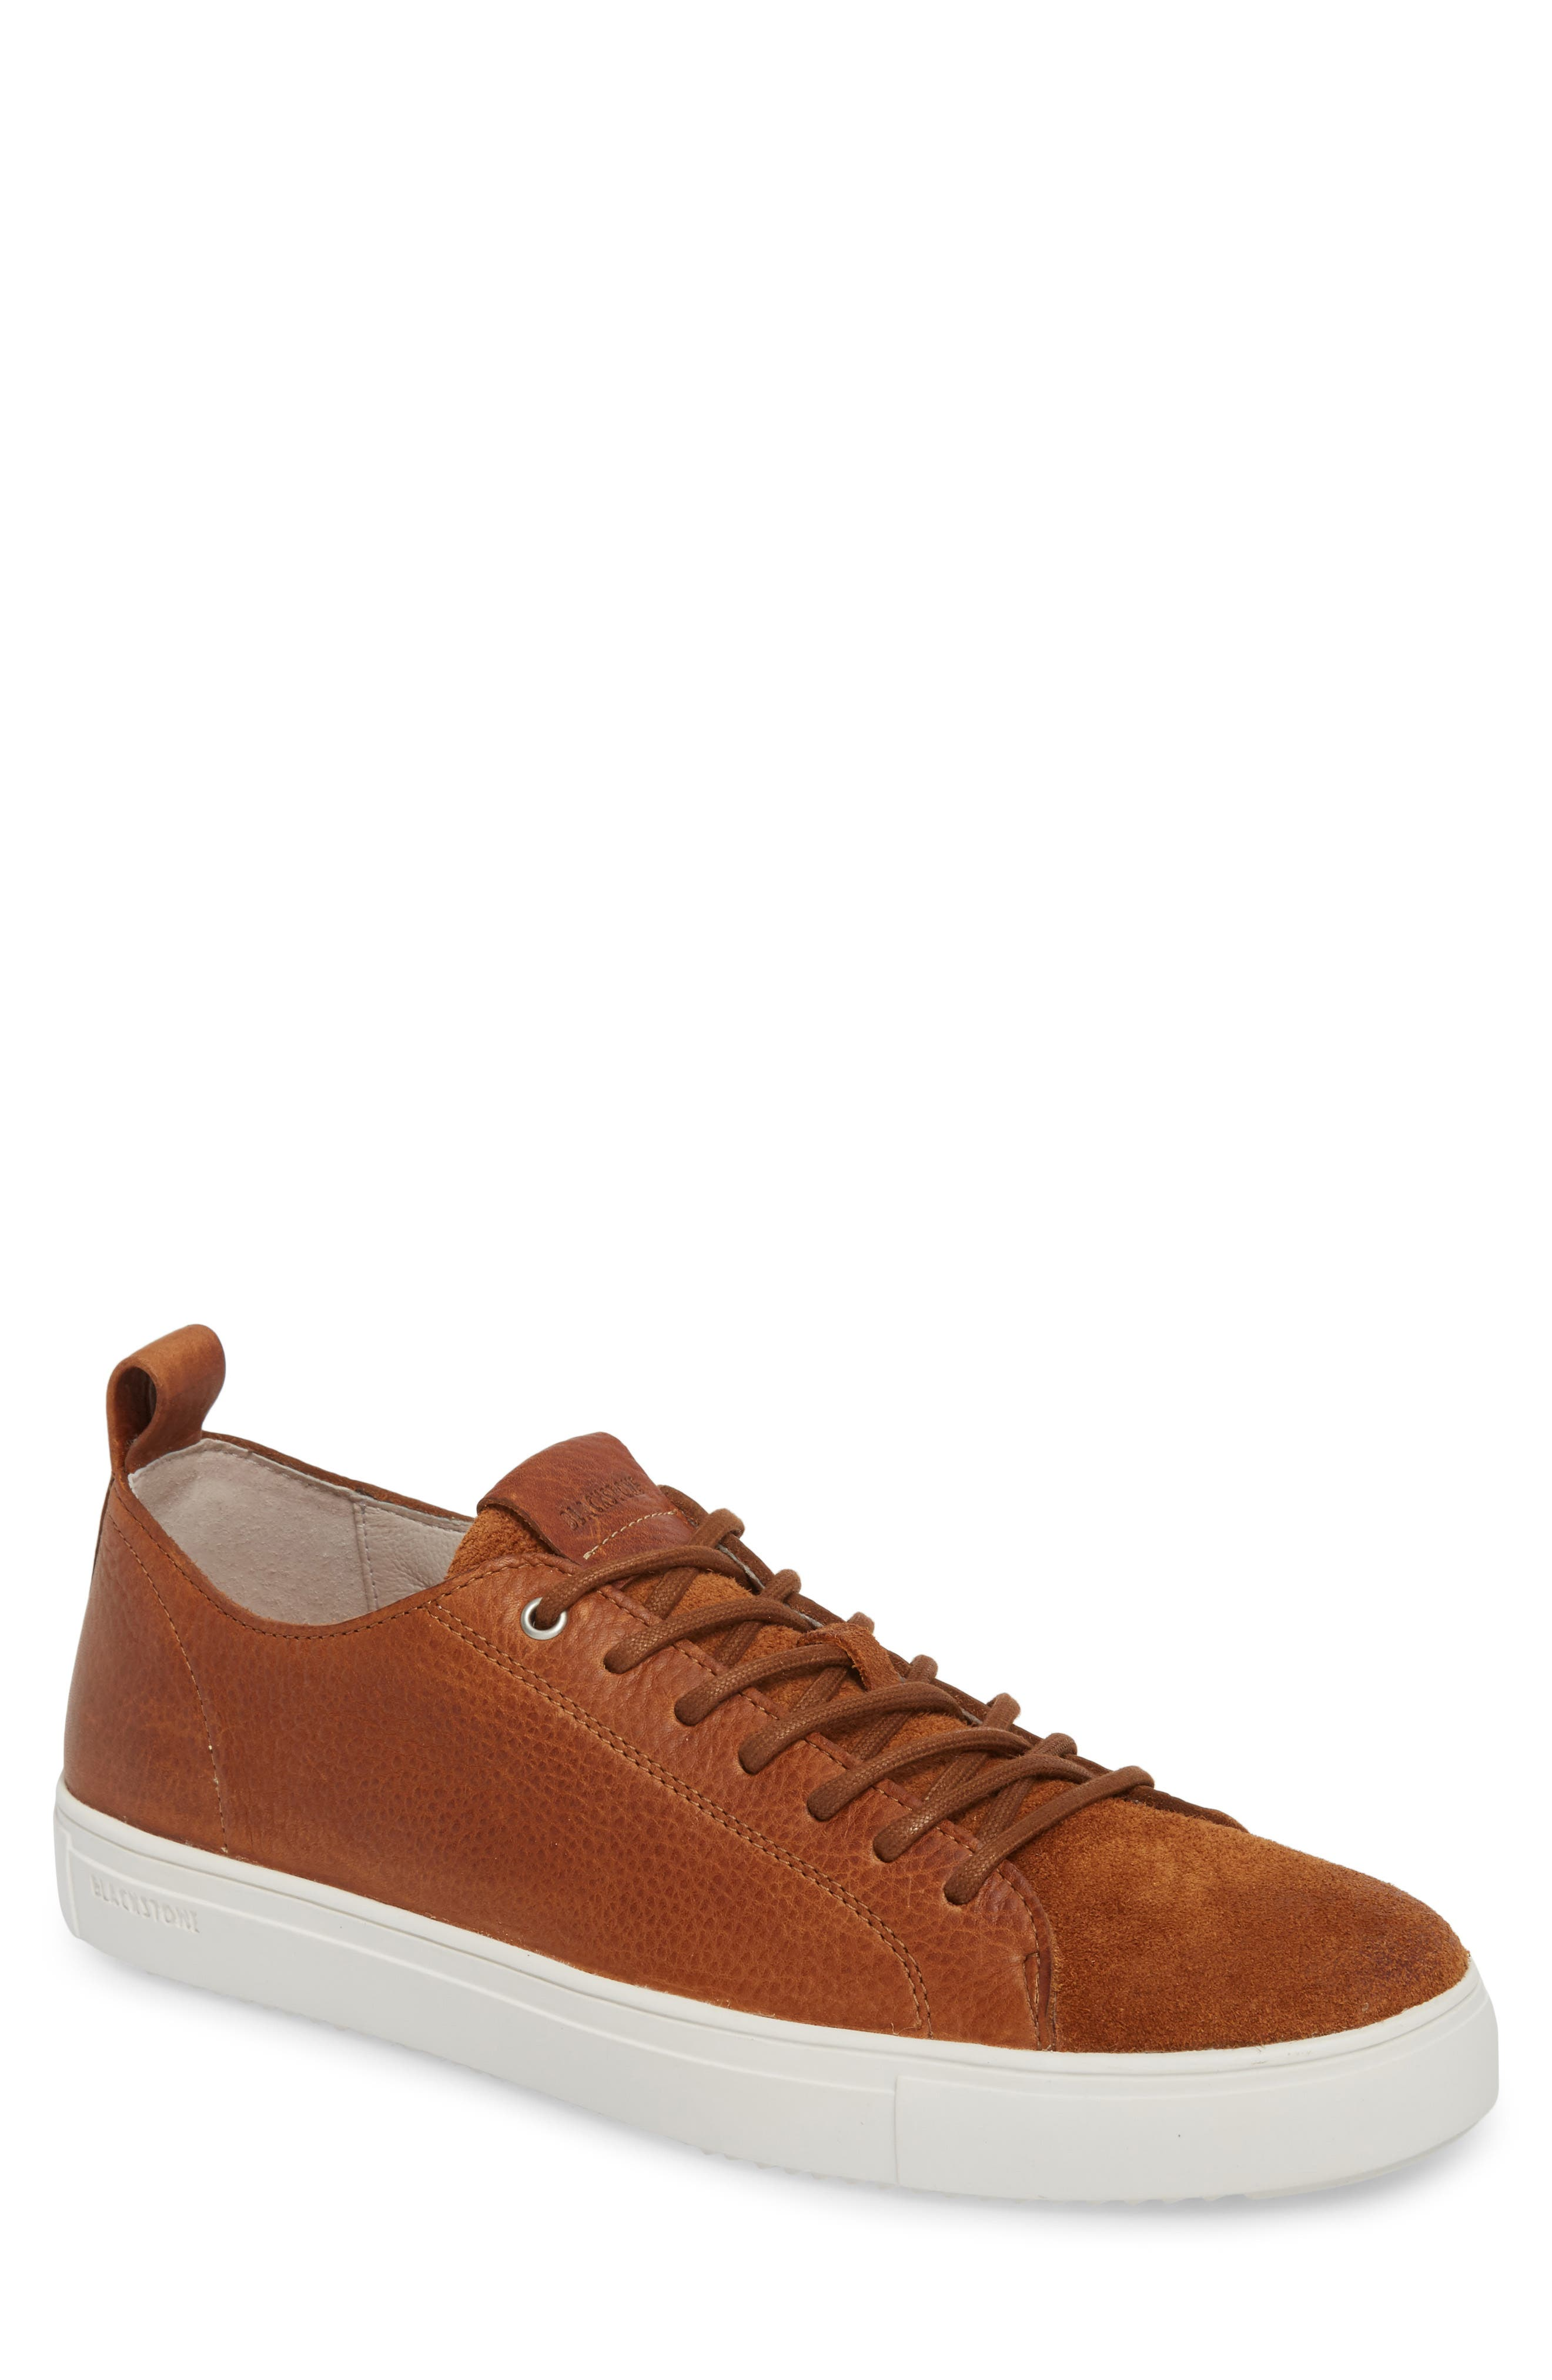 PM46 Low Top Sneaker,                             Main thumbnail 1, color,                             Cuoio Leather